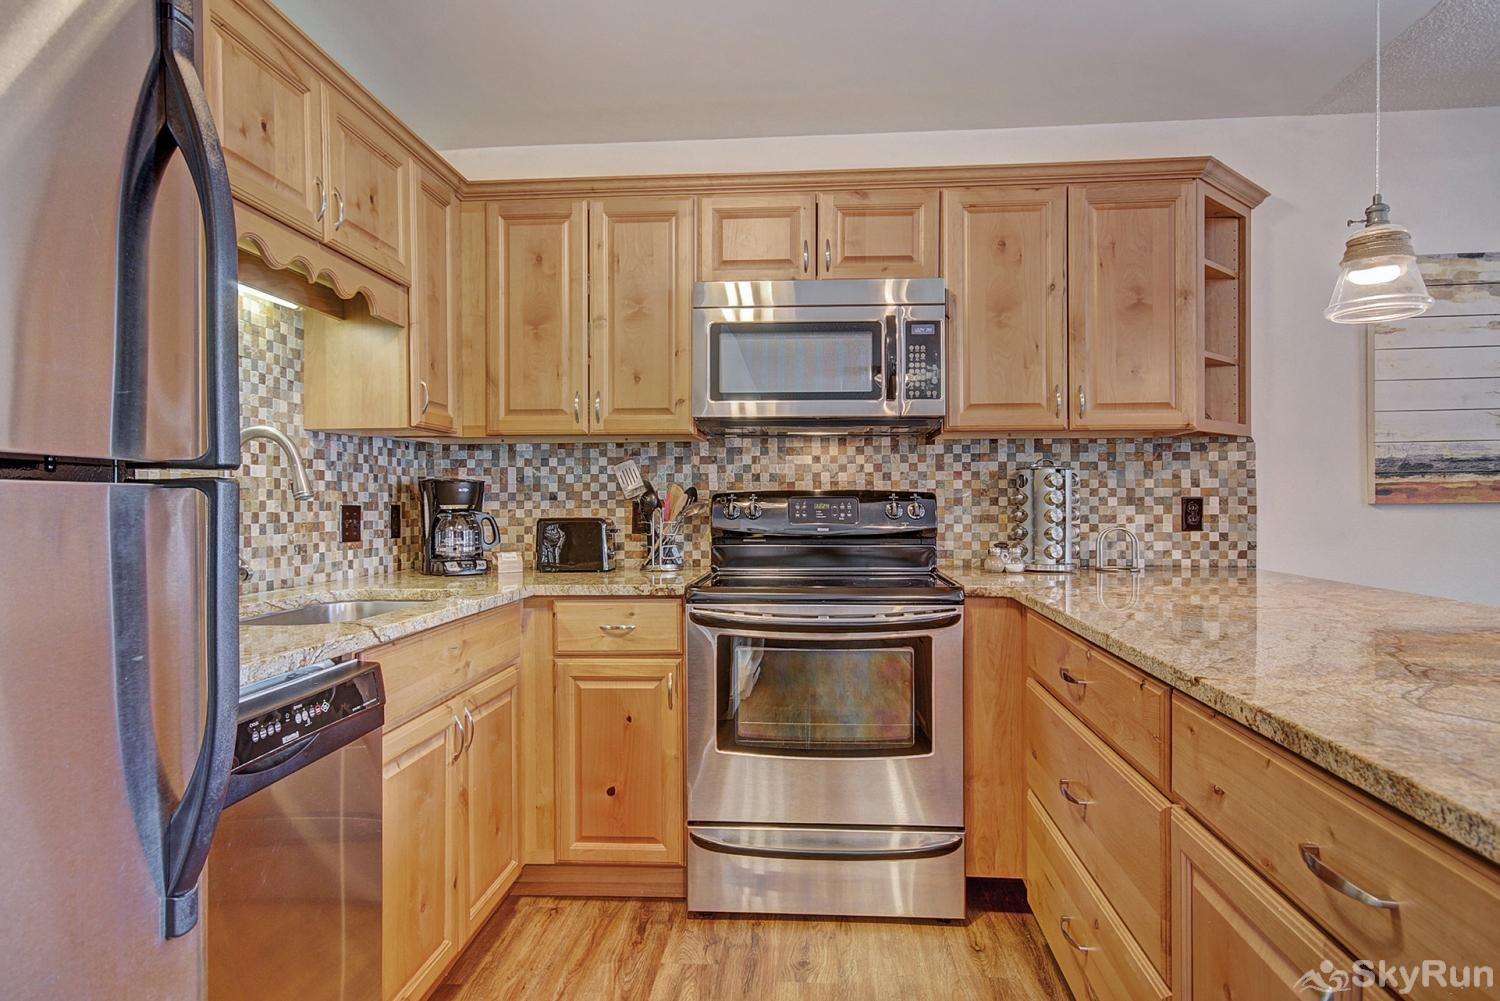 Tyra Summit A2E Fully upgraded kitchen with stainless steel appliances